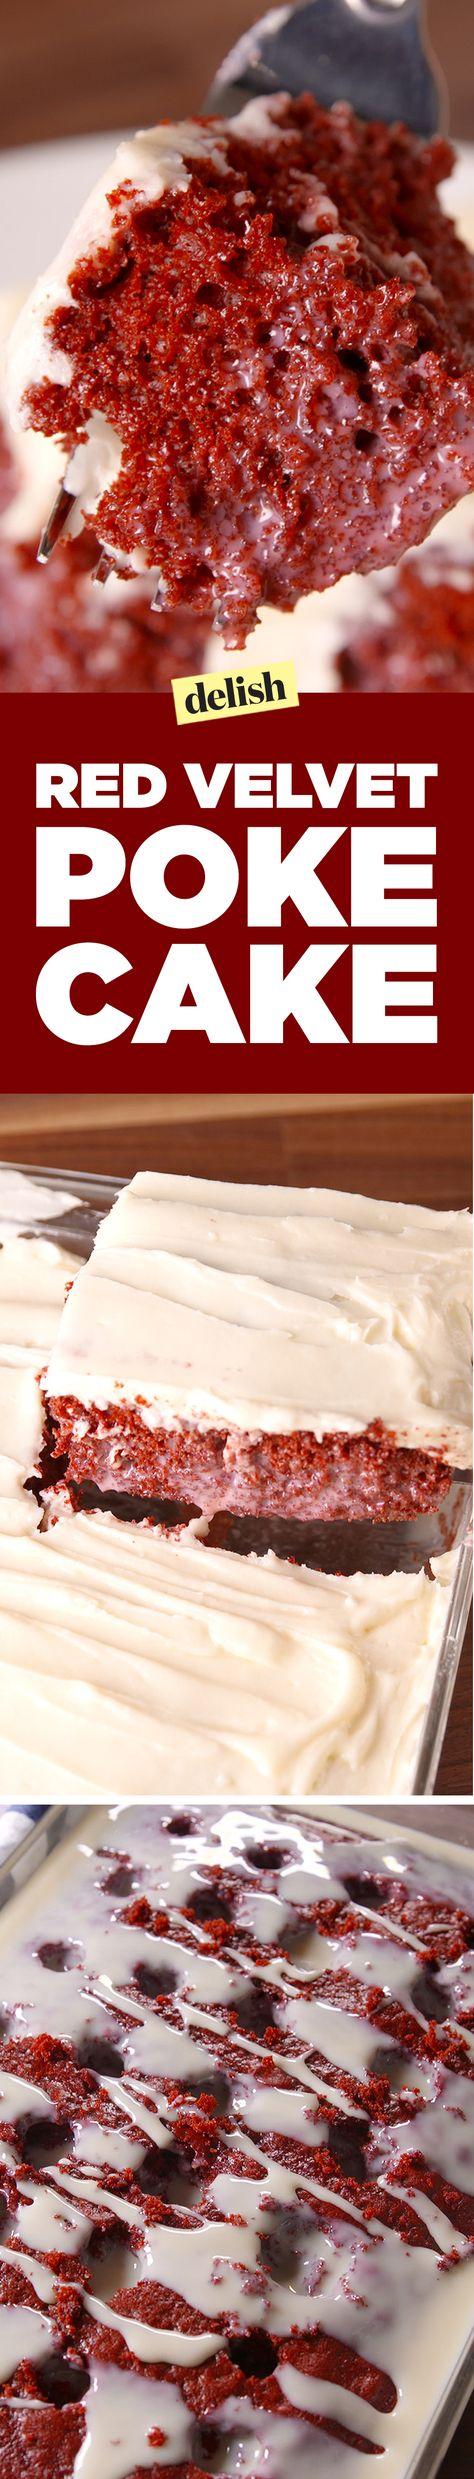 This red velvet poke cake is the perfect dessert for any party. Get the recipe on Delish.com.